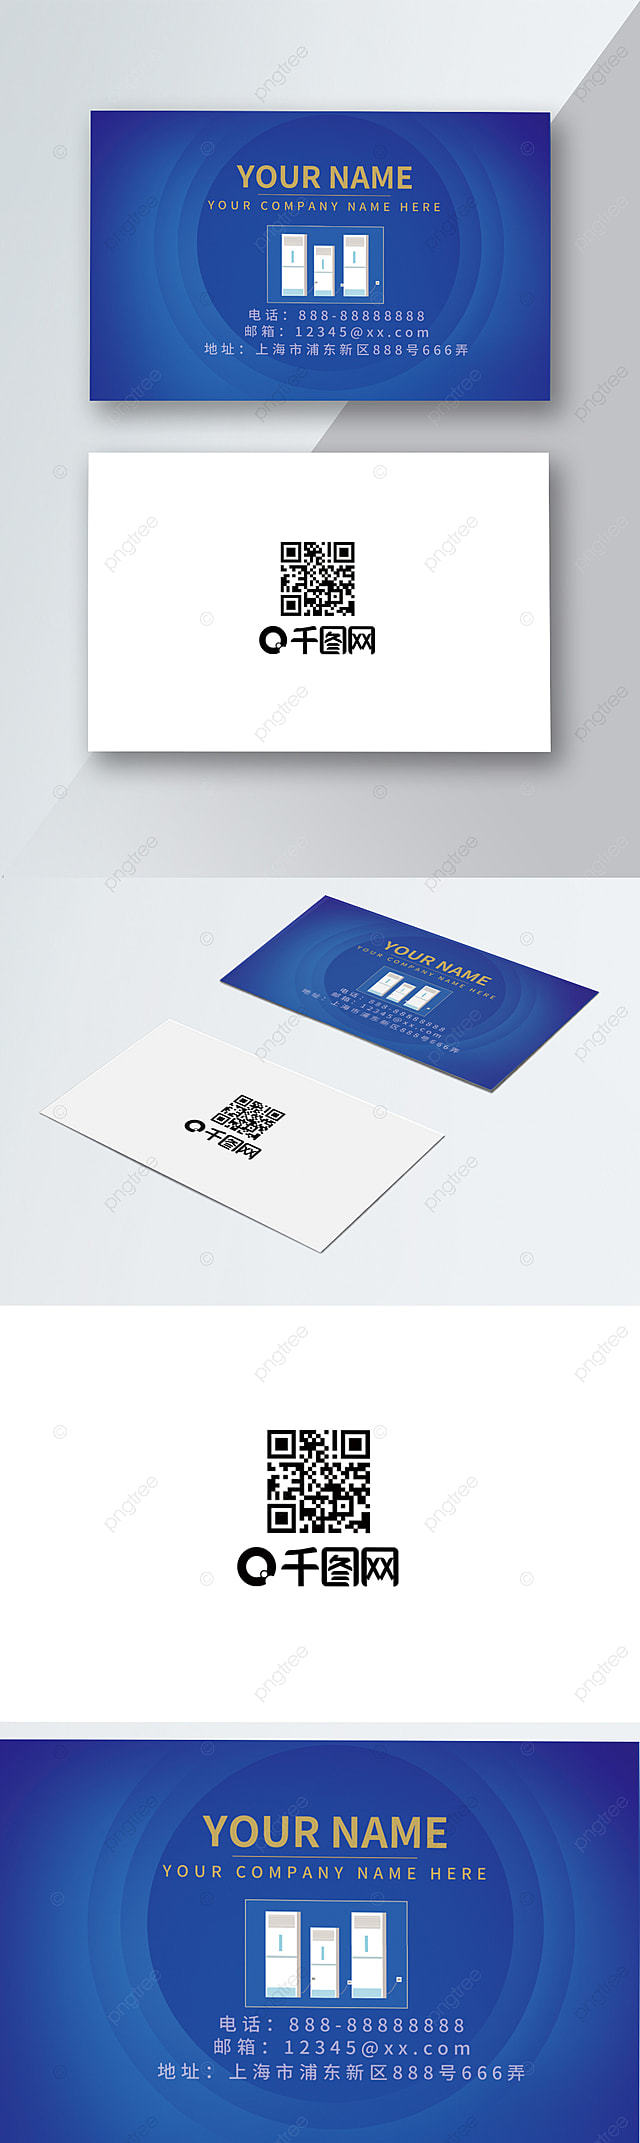 Home Appliance Electrical Chain Business Card Home